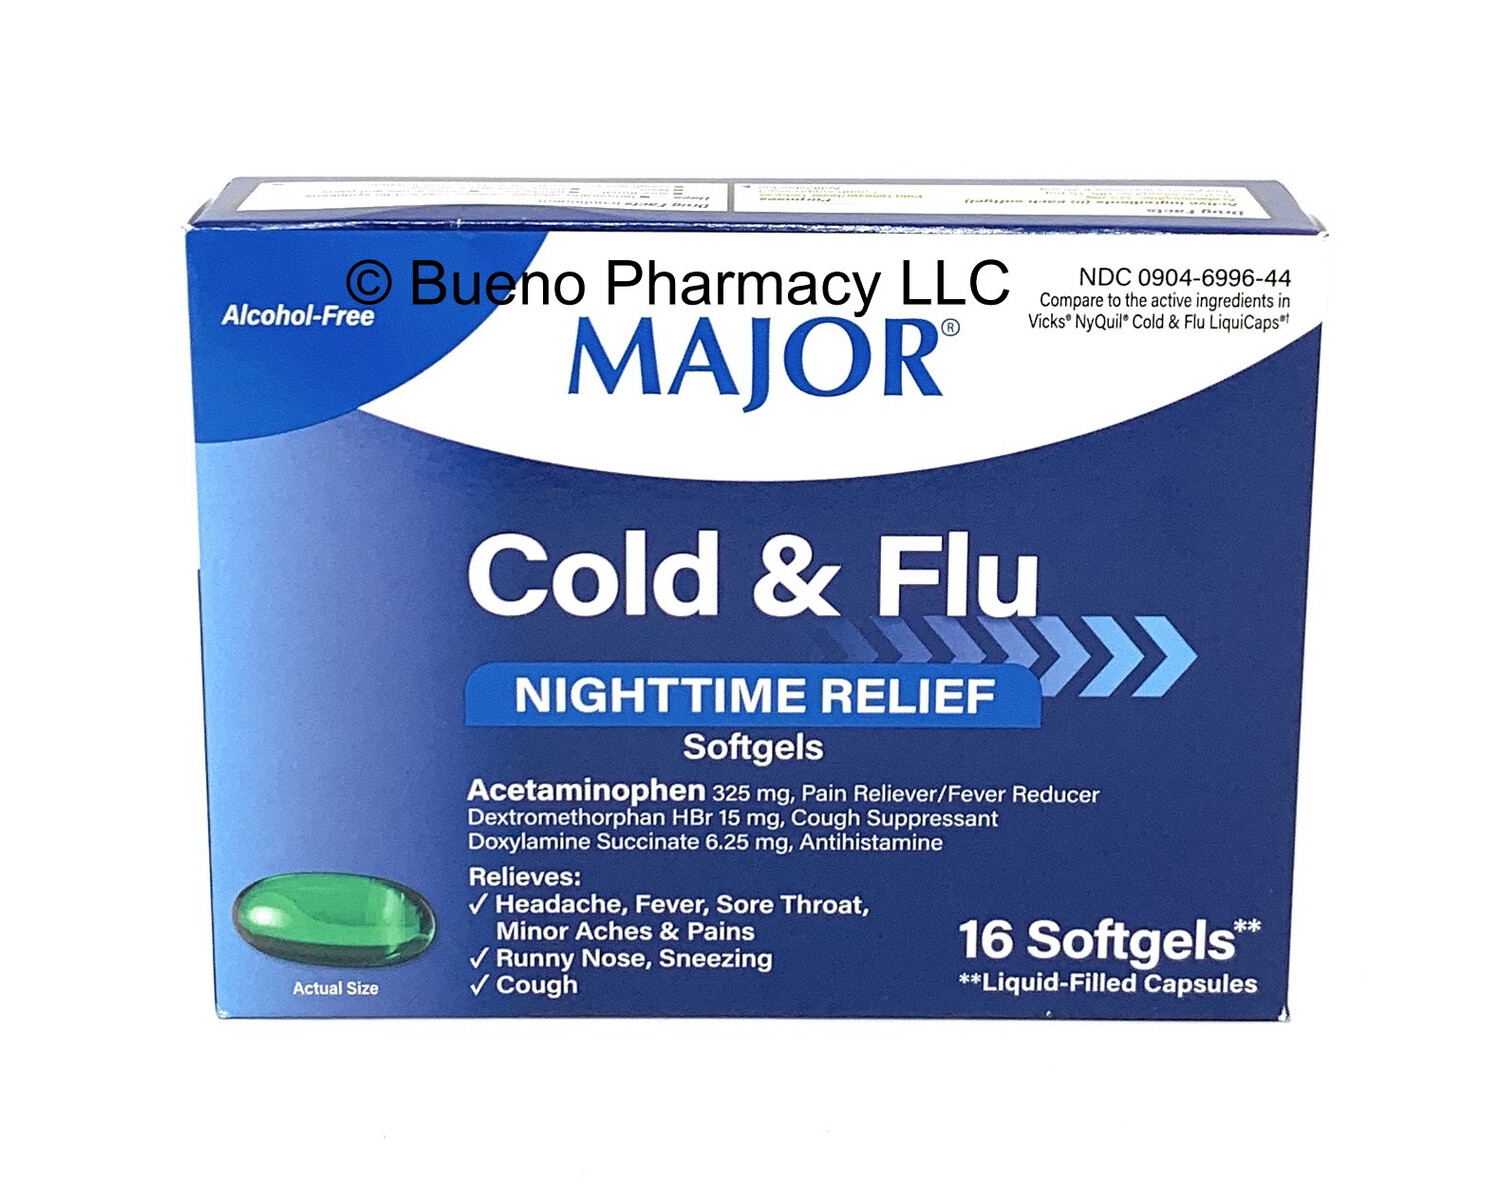 Major Cold & Flu Nightime Relief Softgel